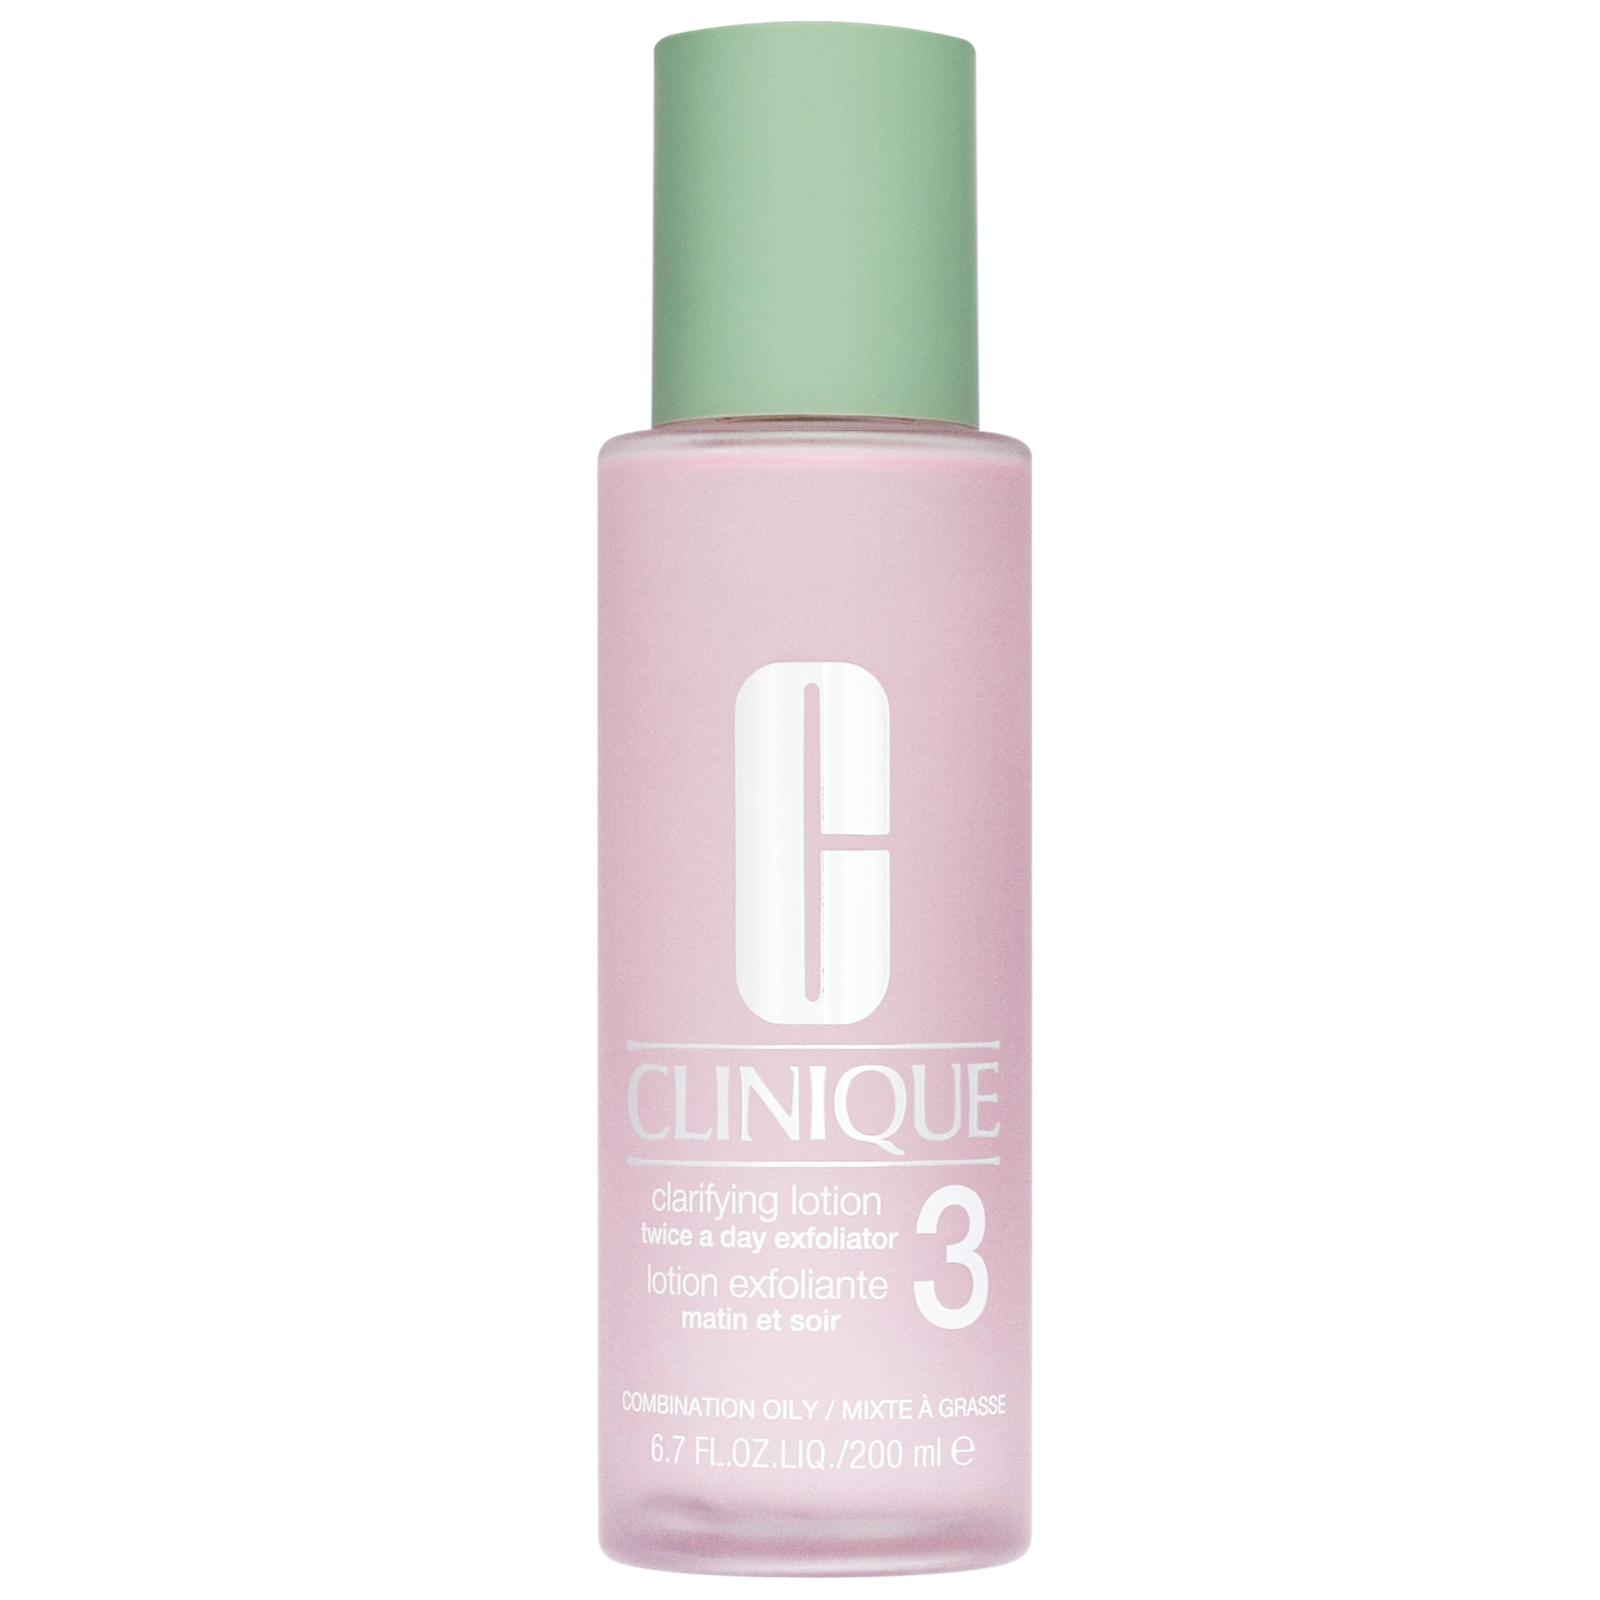 Clinique Cleansers & Makeup Removers Clarifying Lotion Twice A Day Exfoliator 3 for Combination and Oily Skin 200ml / 6.7 fl.oz.